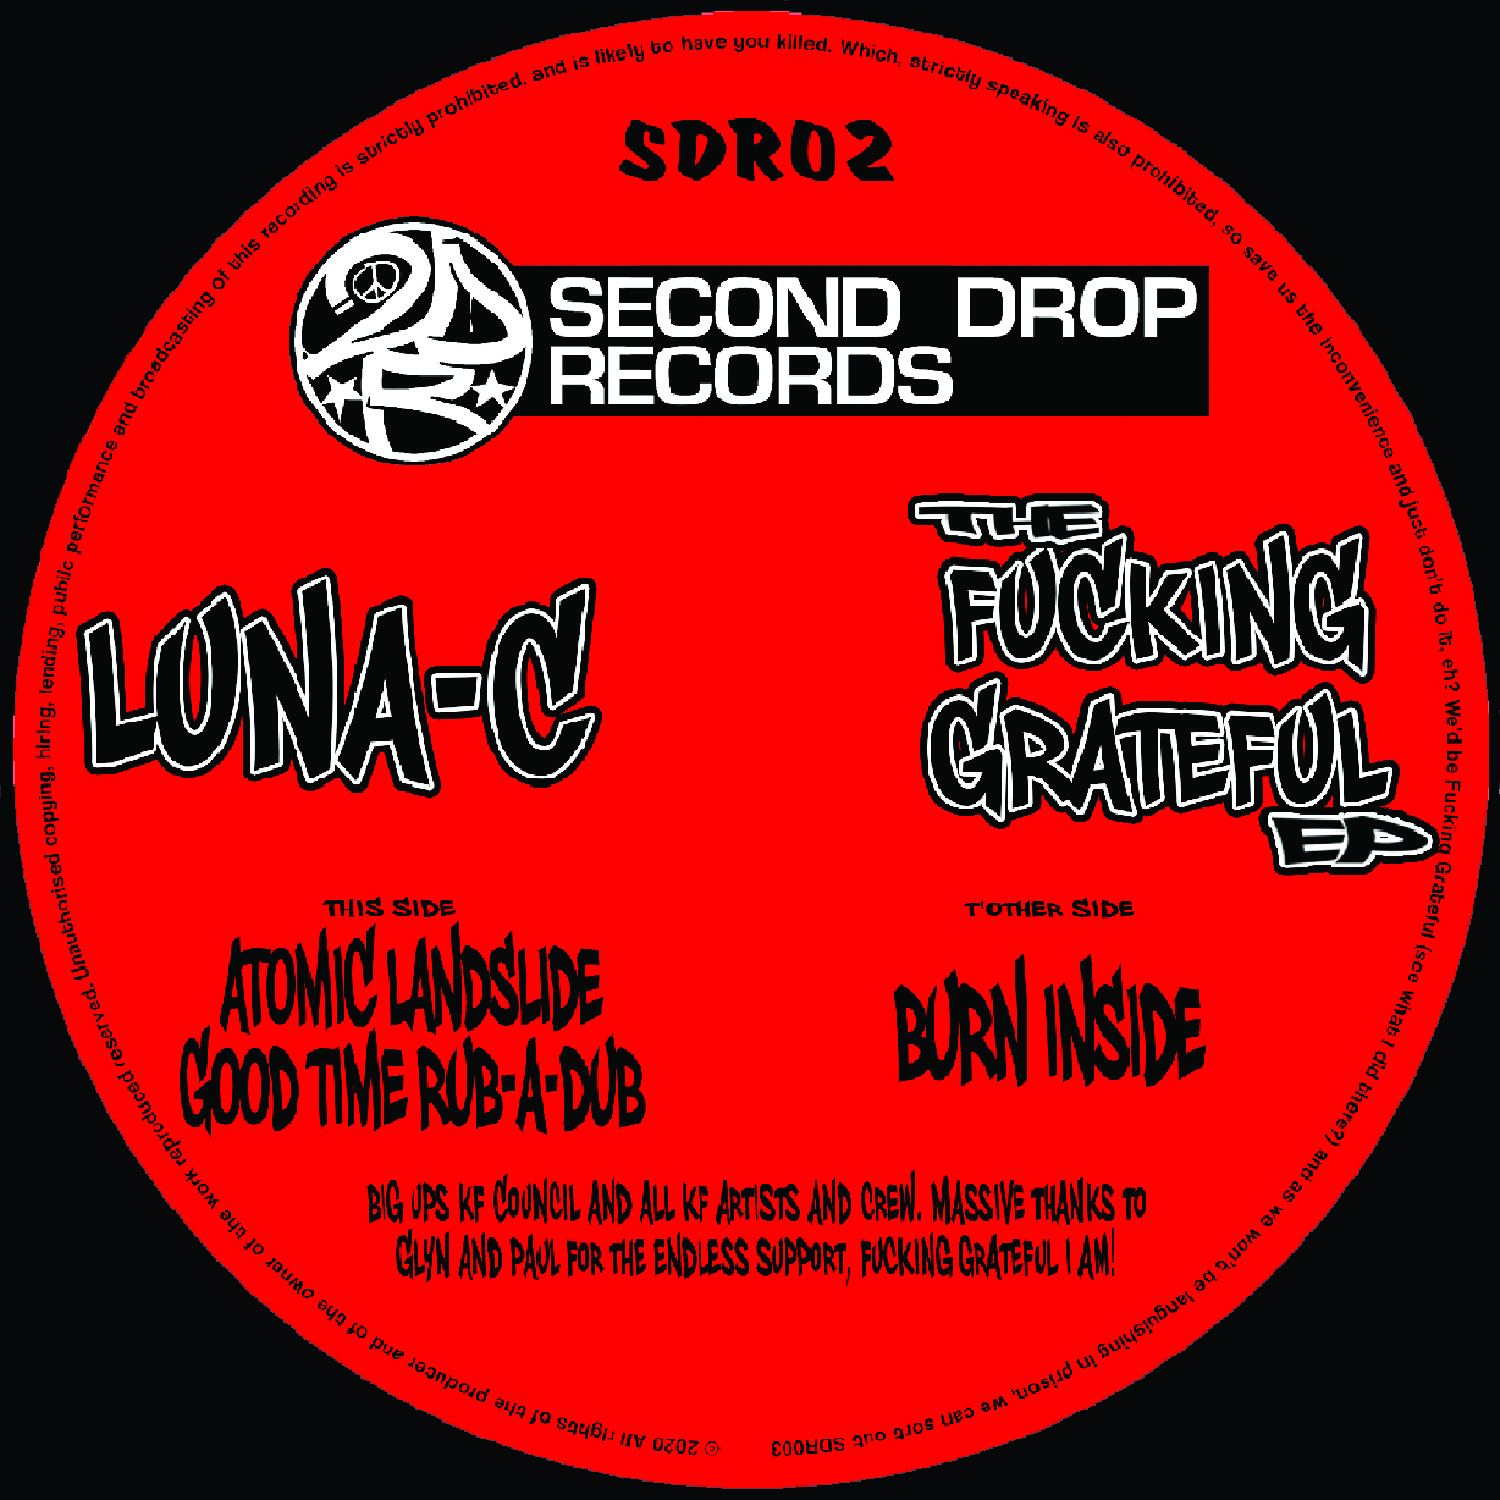 "[SDR02] Luna-C - The Fucking Grateful EP (12"" Vinyl + Digital)"